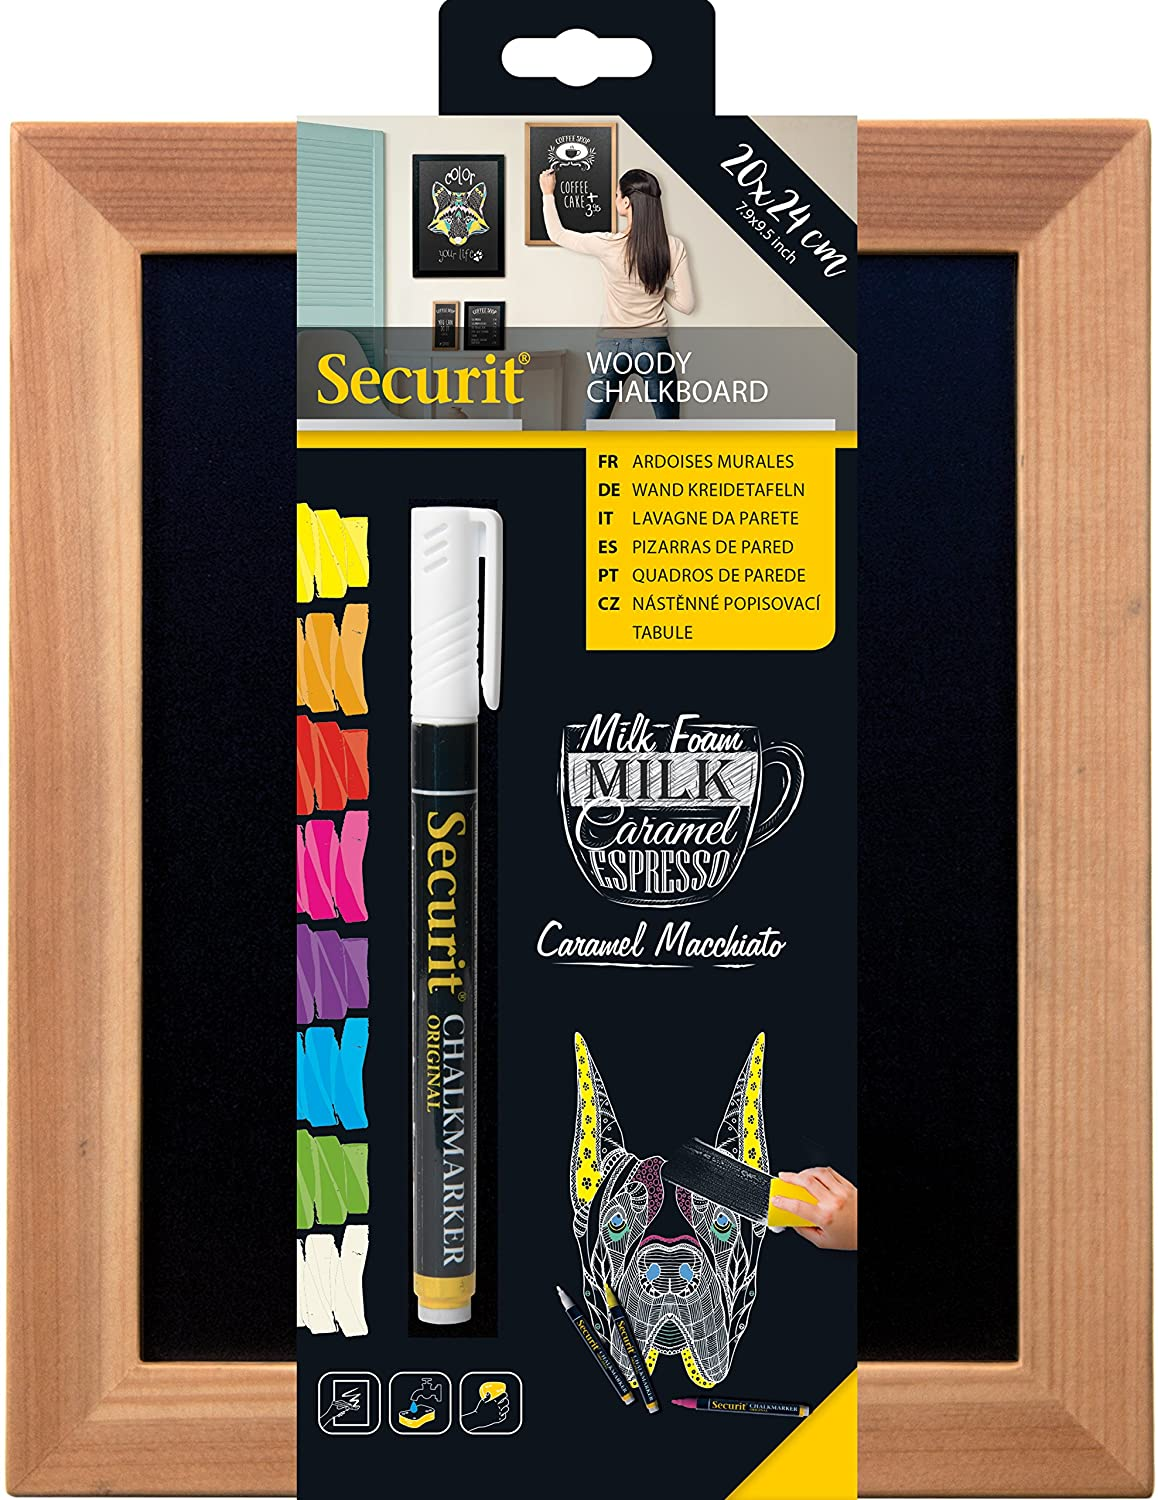 Amazon.com : Securit Woody 20x24cm Wall Chalk Board- Teak by Securit ...